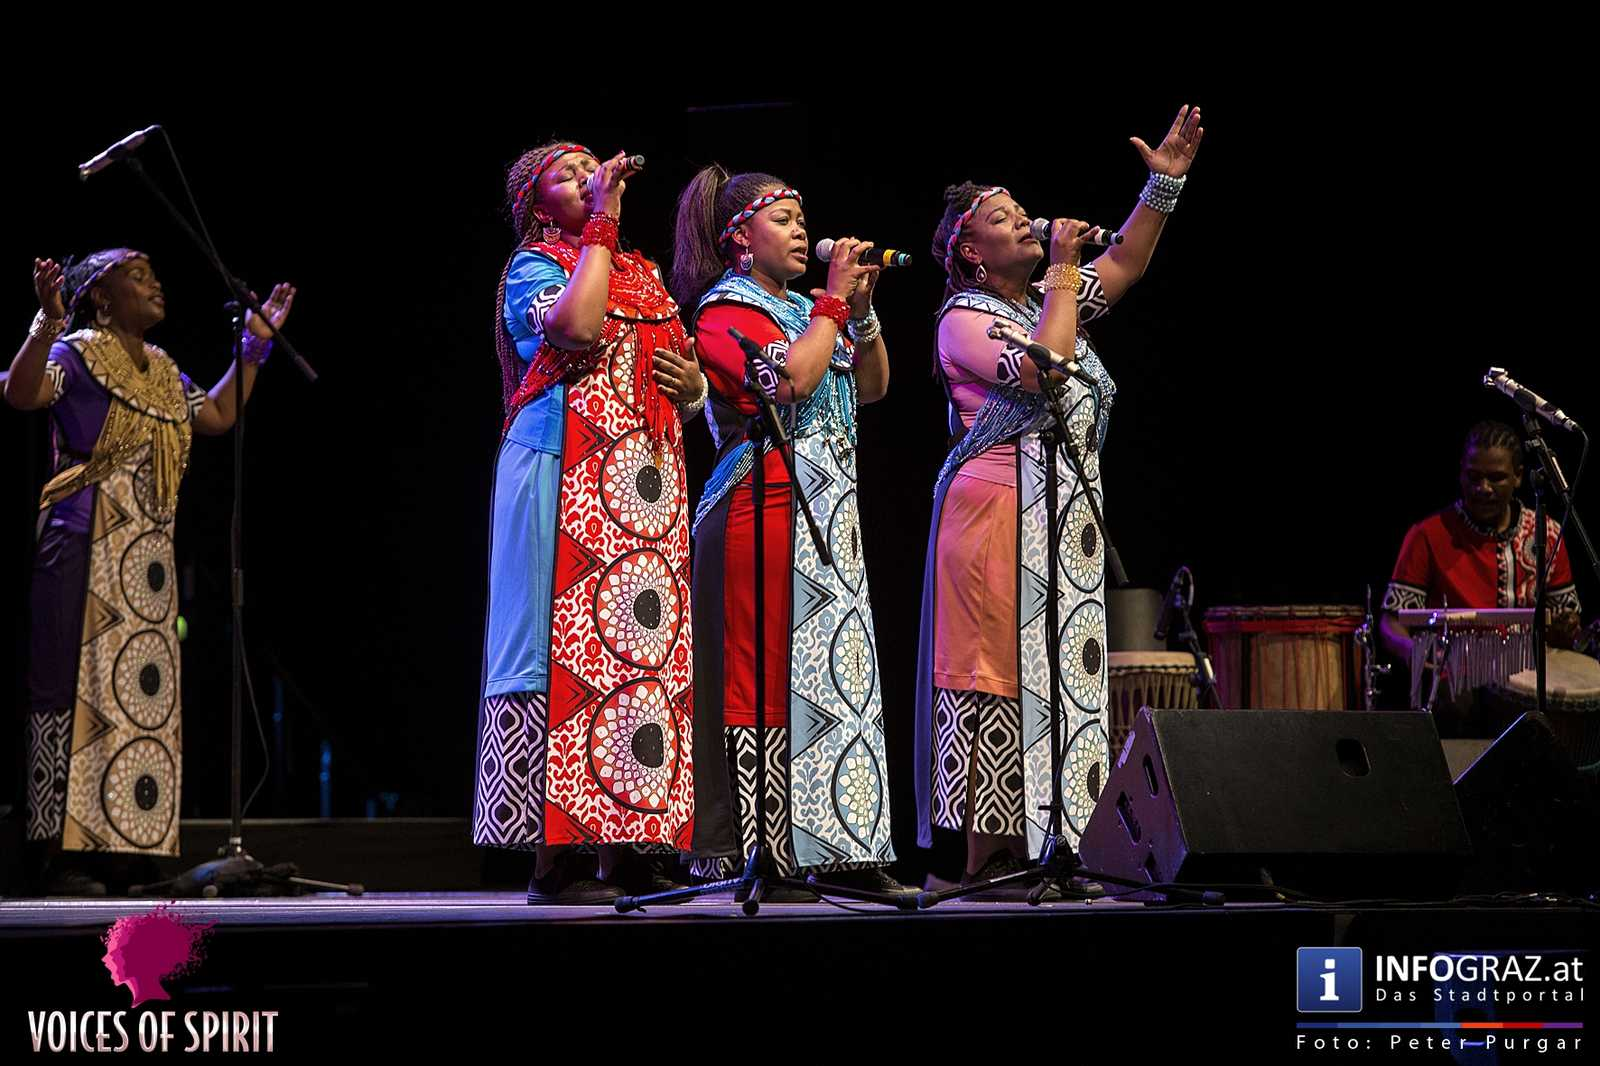 soweto gospel choir internationales chorfestival statdthalle graz voices of spirit eroeffnung festivals 2016 098